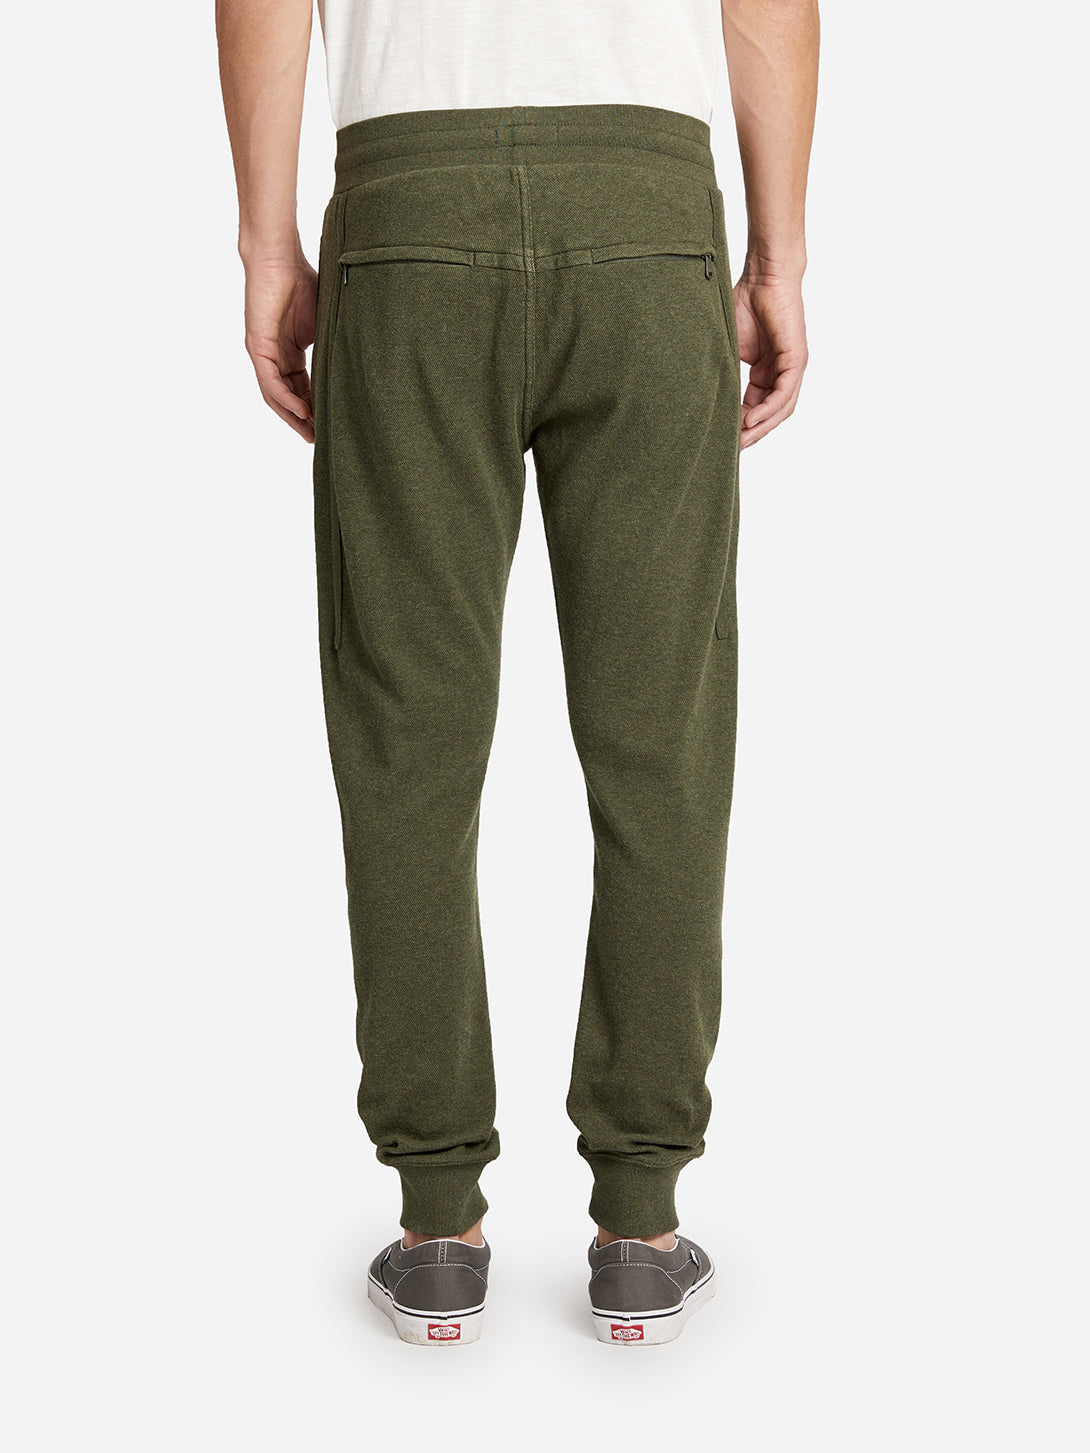 BKLYN JOGGER GREEN HERITAGE LINE